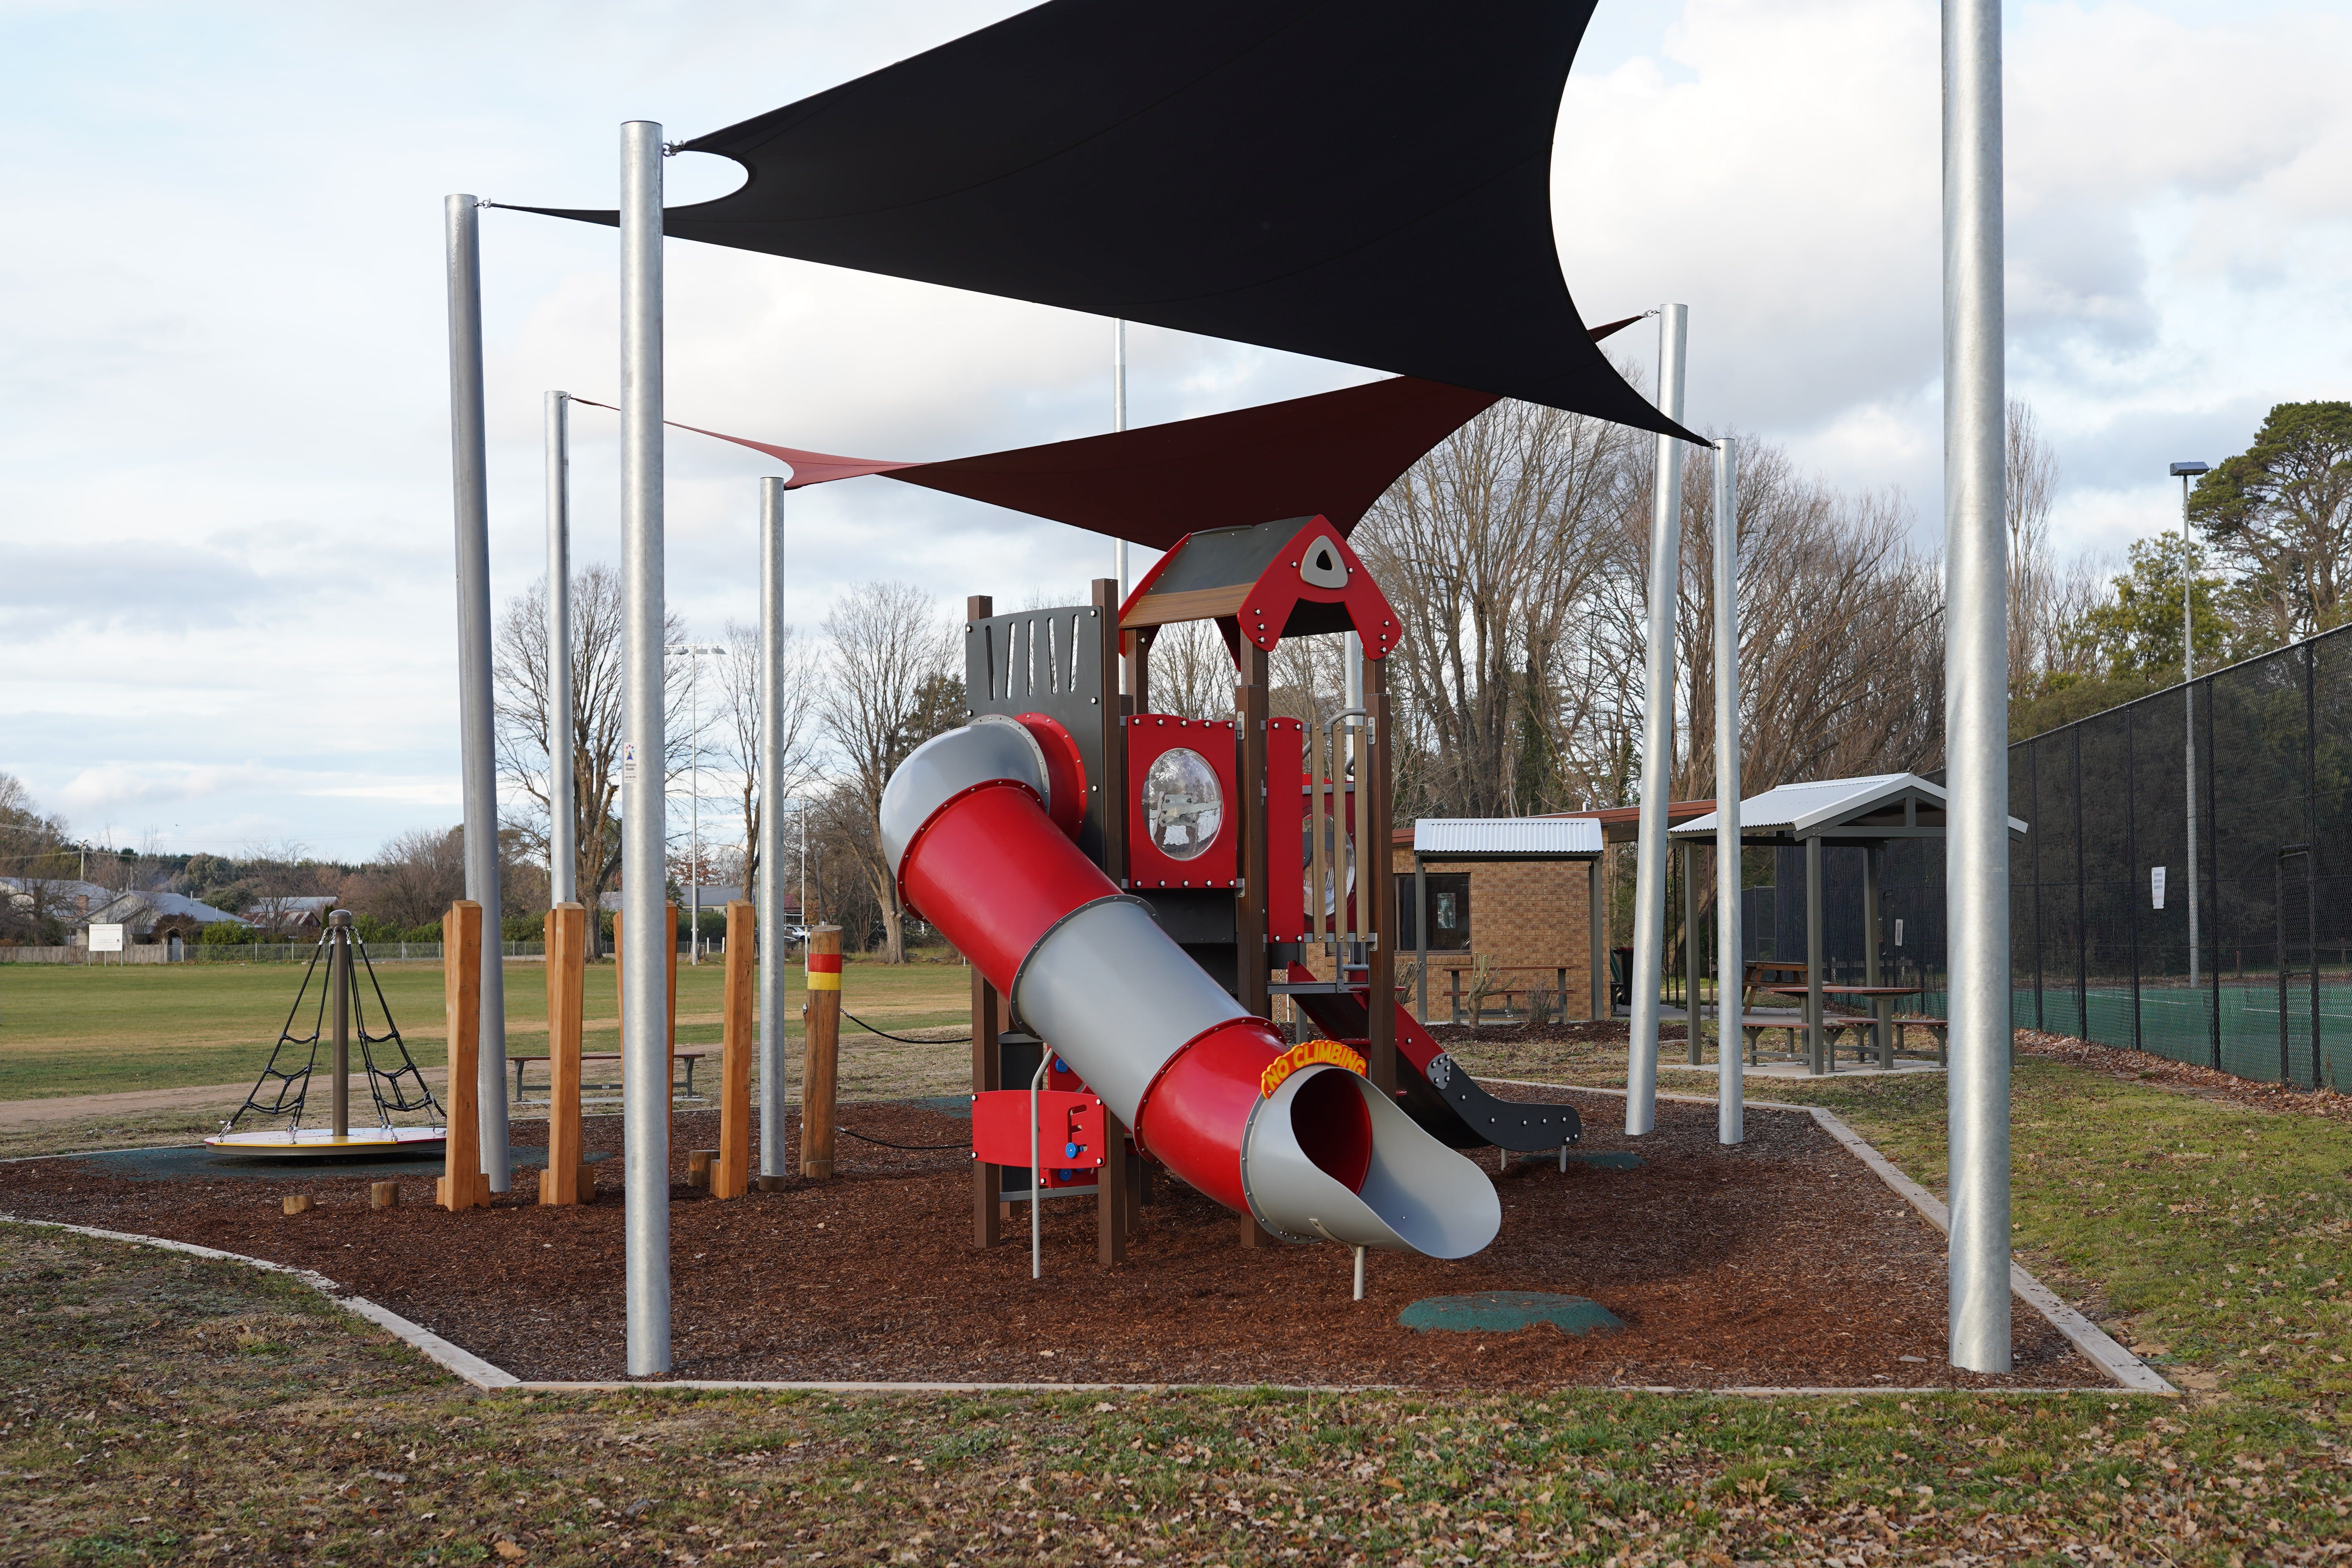 Braidwood Recreation Grounds and Playground - Accommodation Yamba